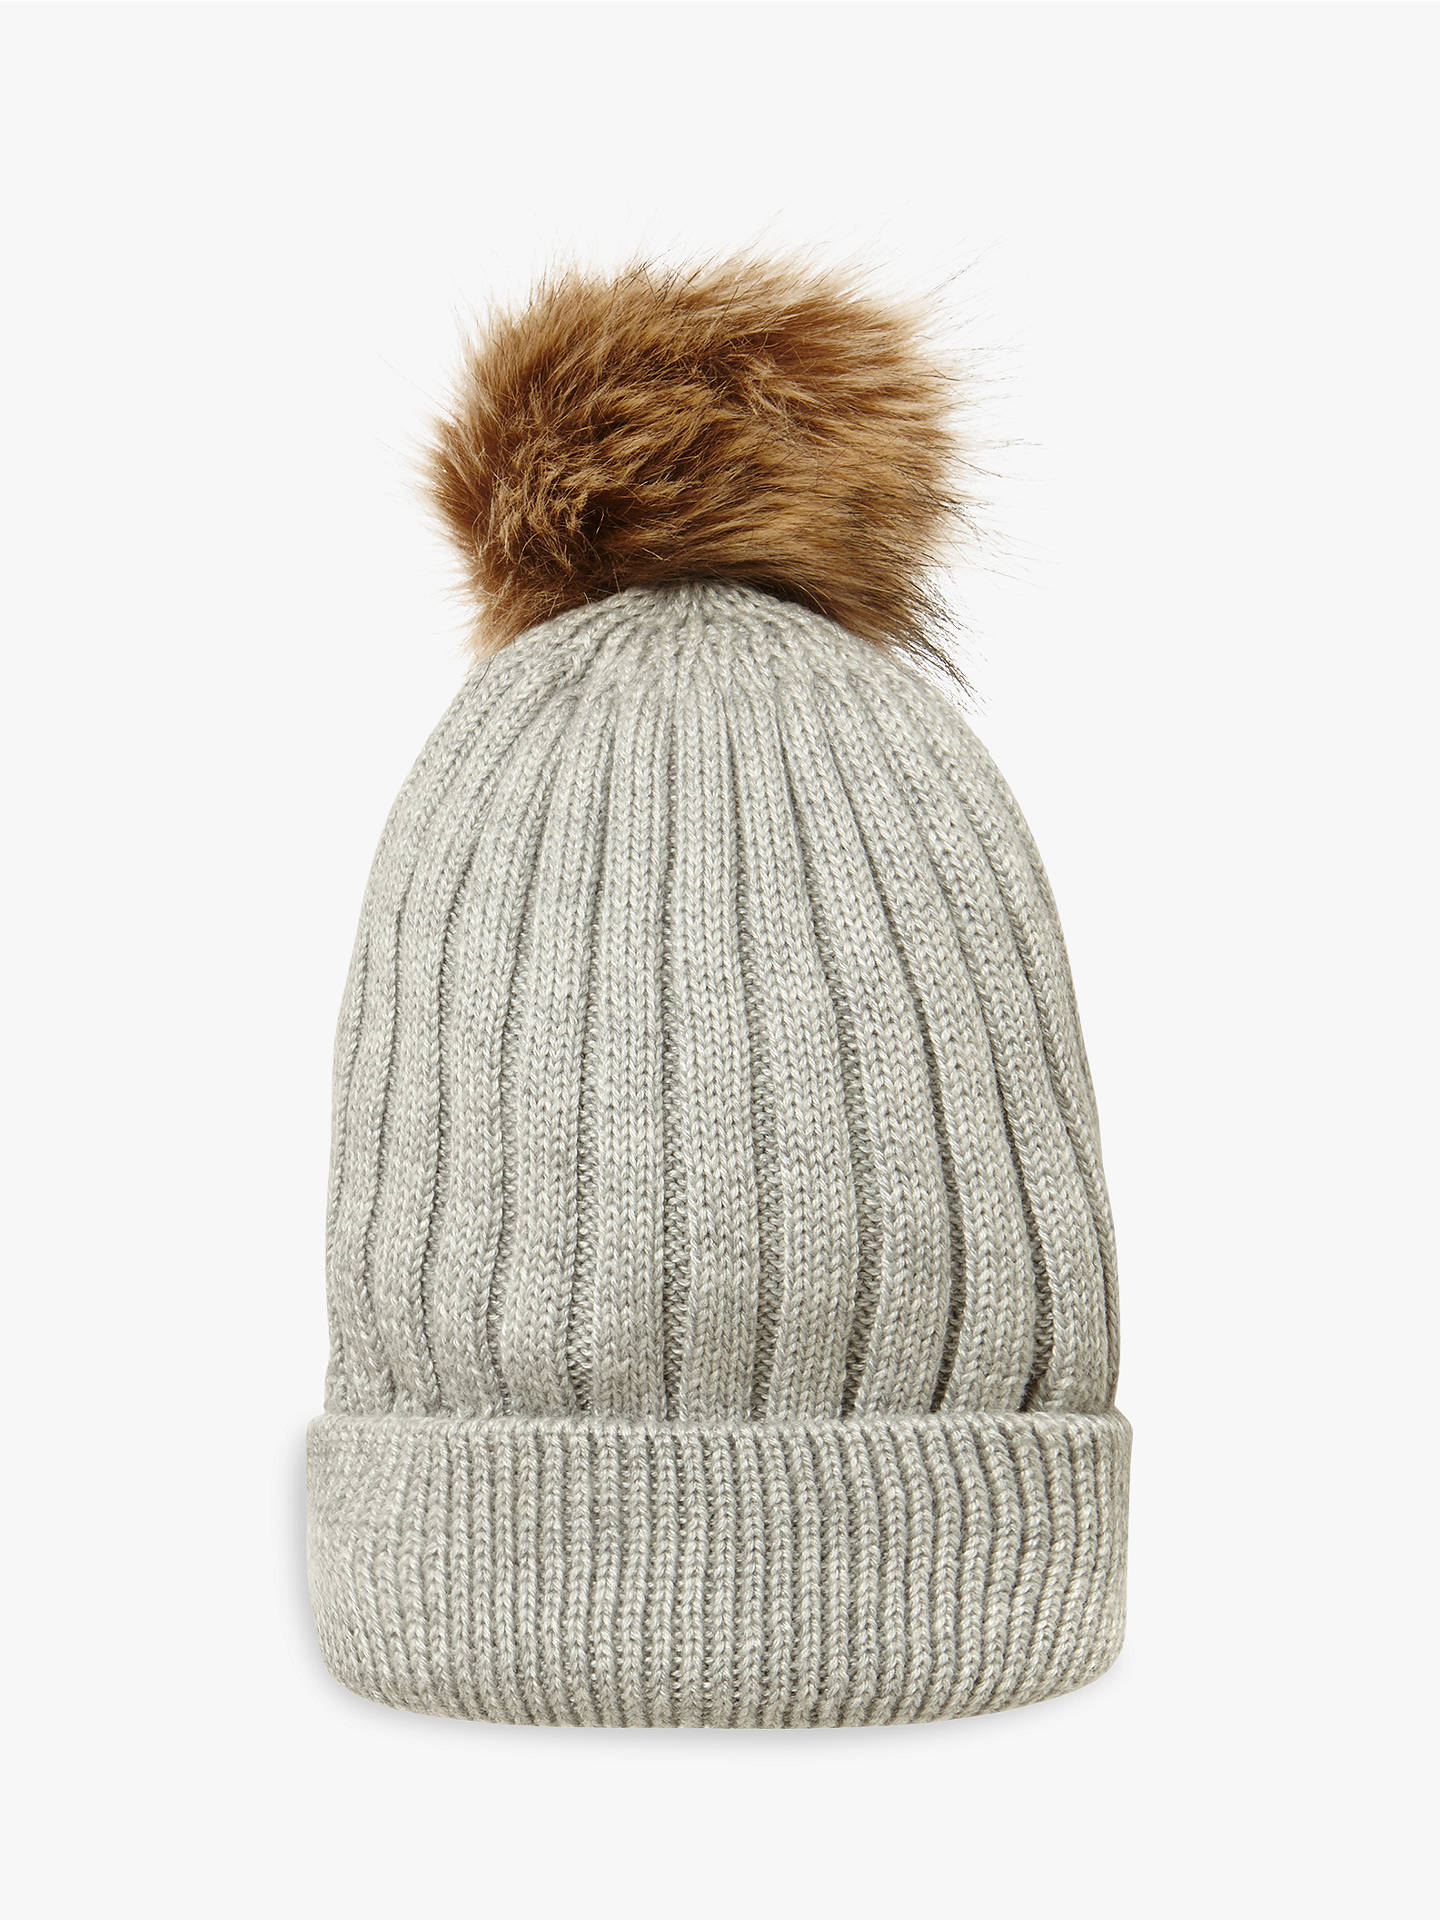 8d50afc30bf Buy Phase Eight Pom Pom Beanie Hat